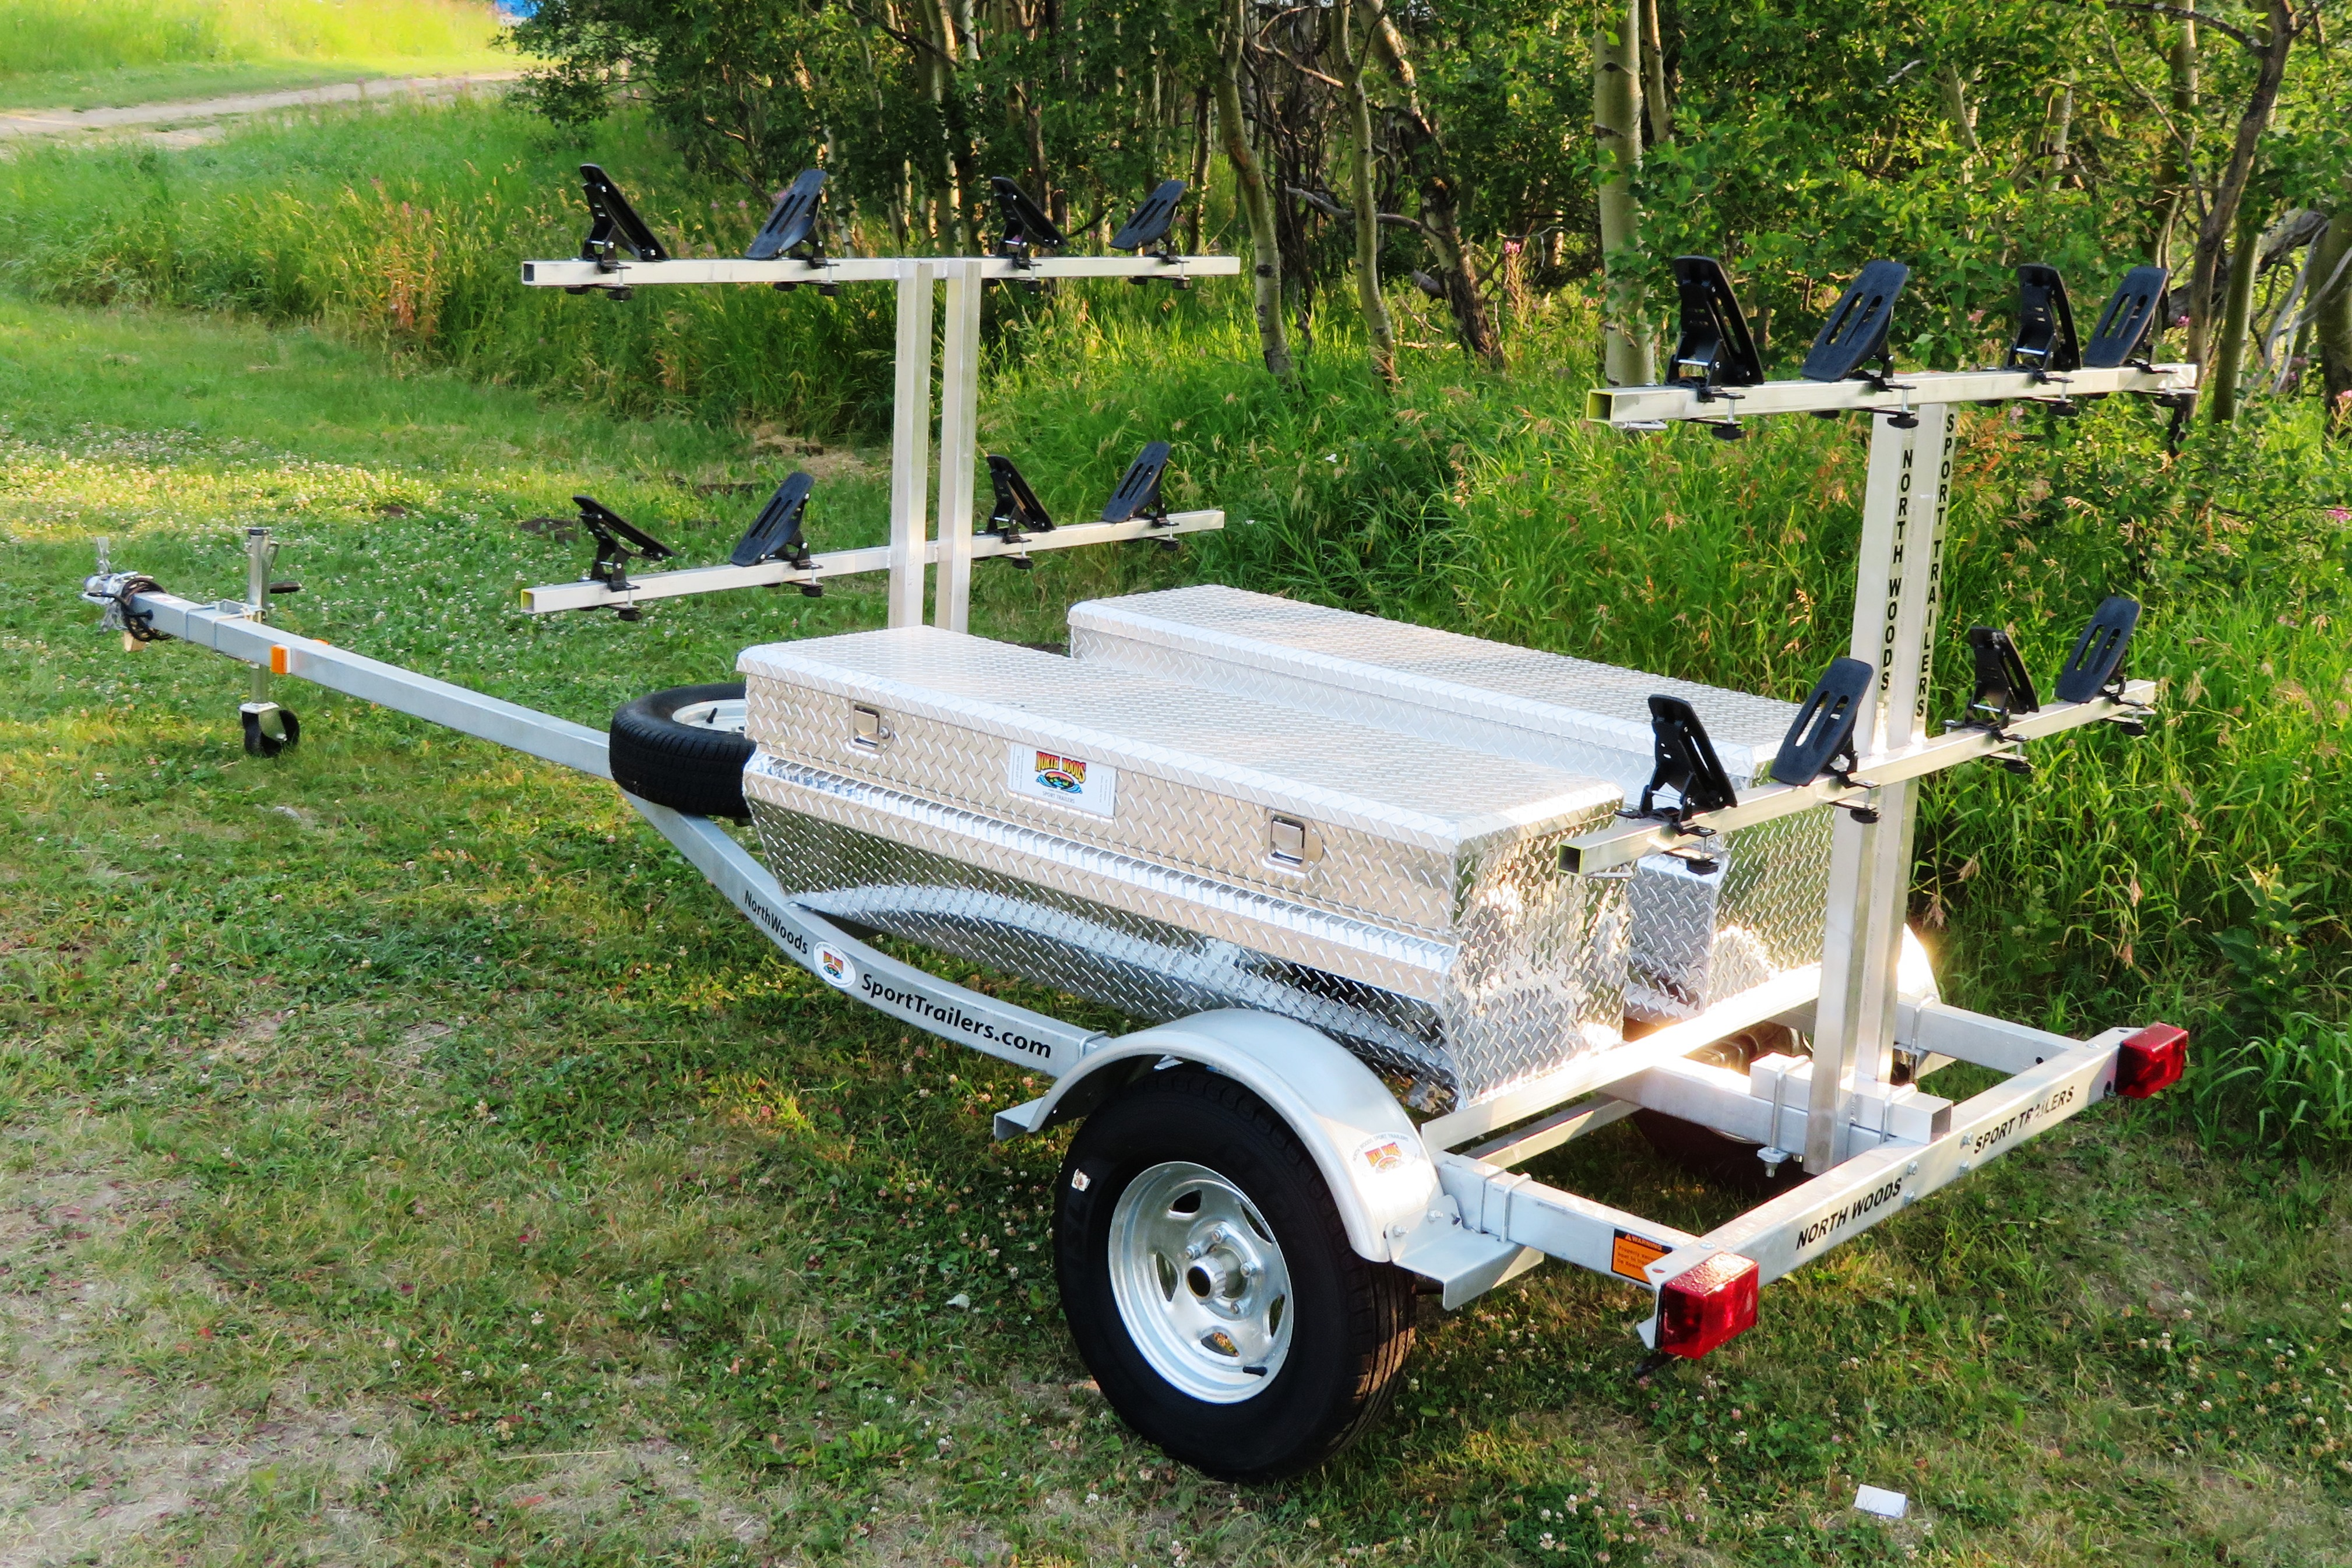 Transport, Storage & Launching: Kayak/Canoe/SUP Trailer, Bikes. Gear by North Woods Sport Trailers - Image 2745